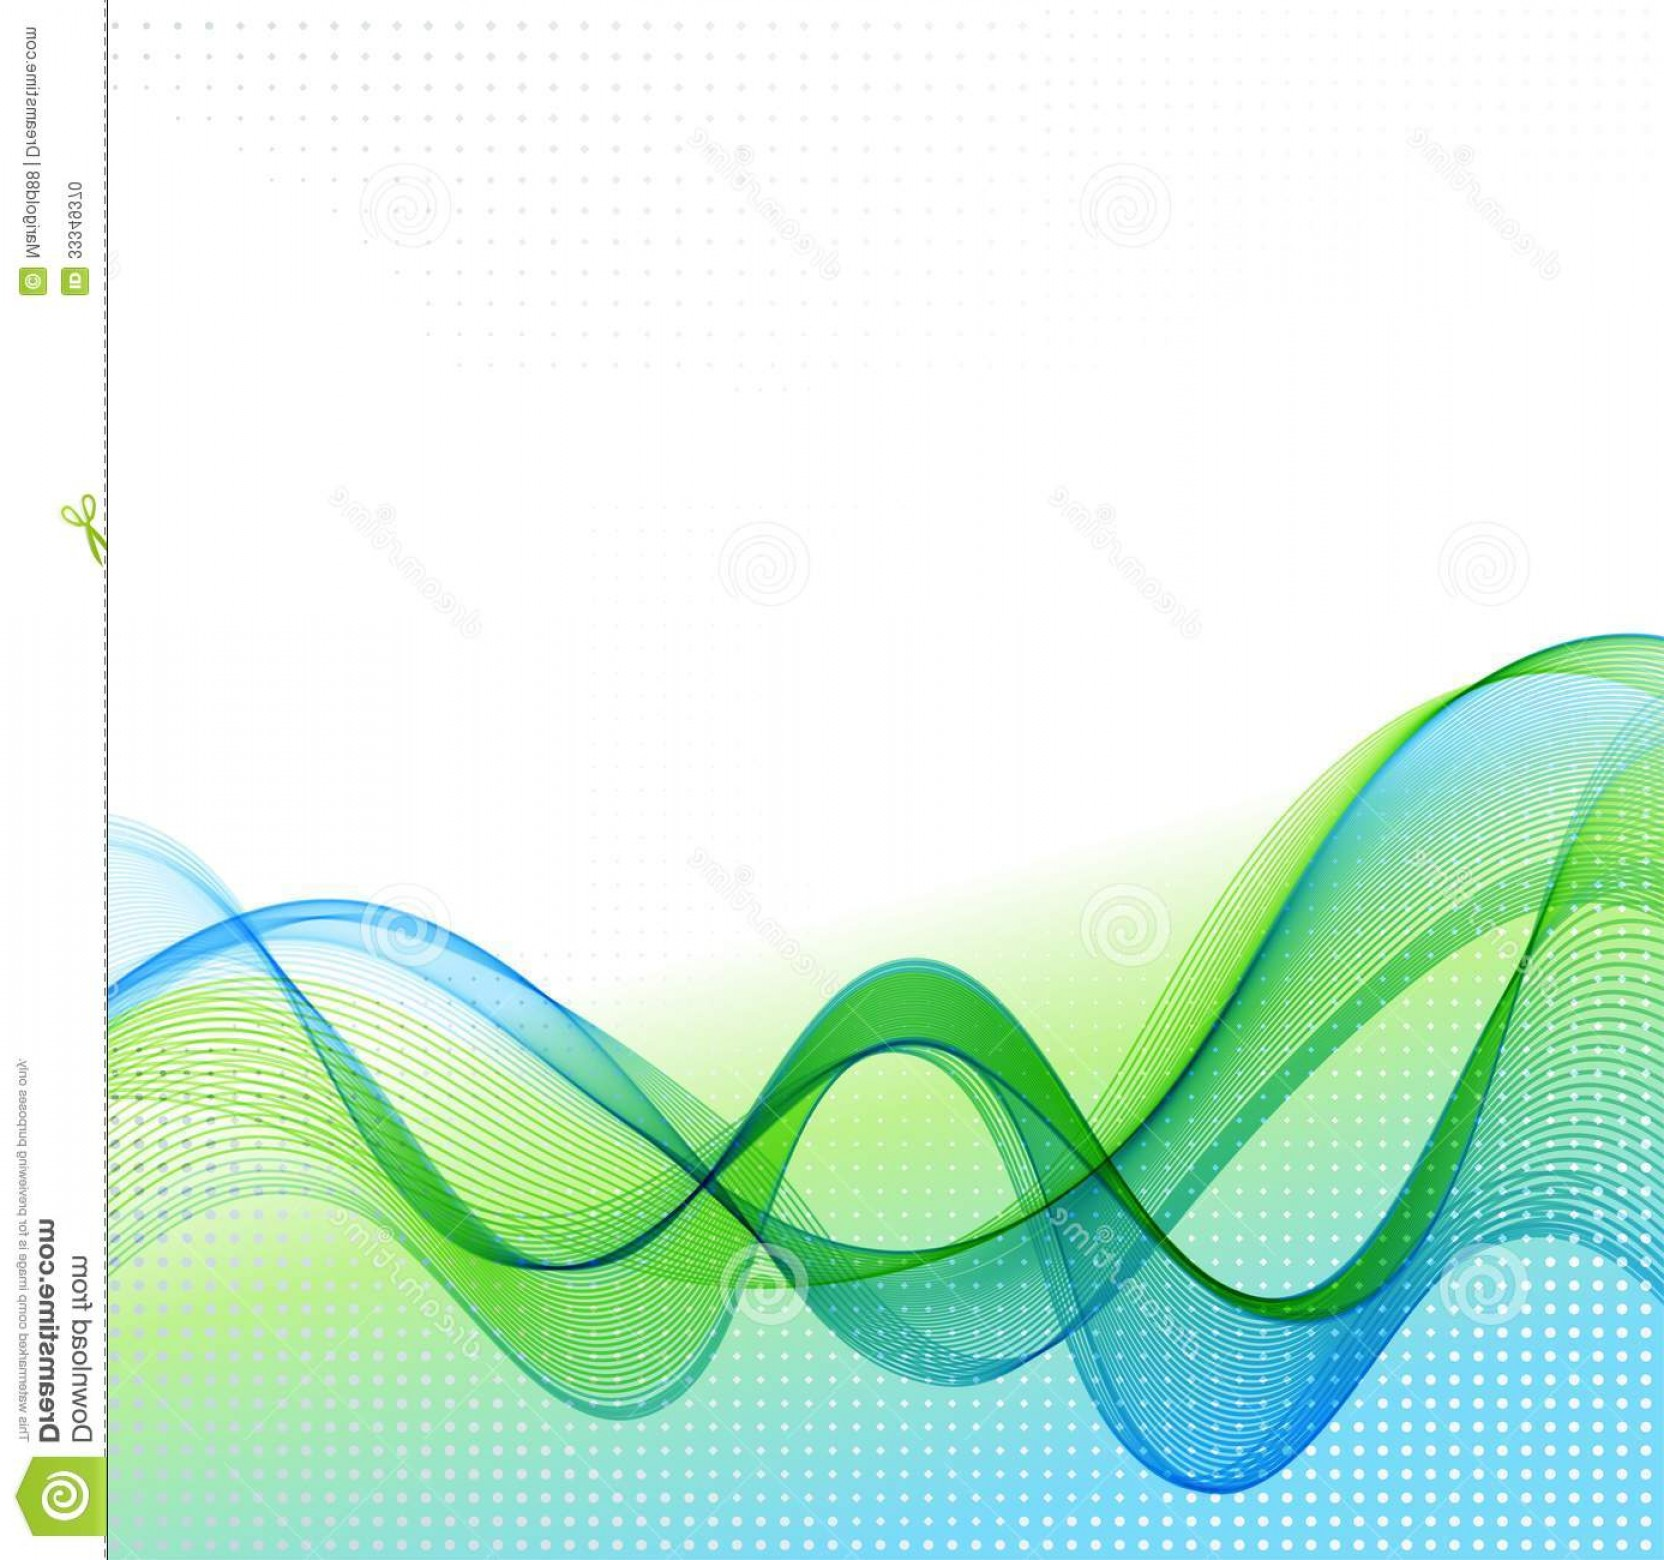 Color Smoke Vector: Stock Photo Color Smoke Wave Abstract Background Vector Image